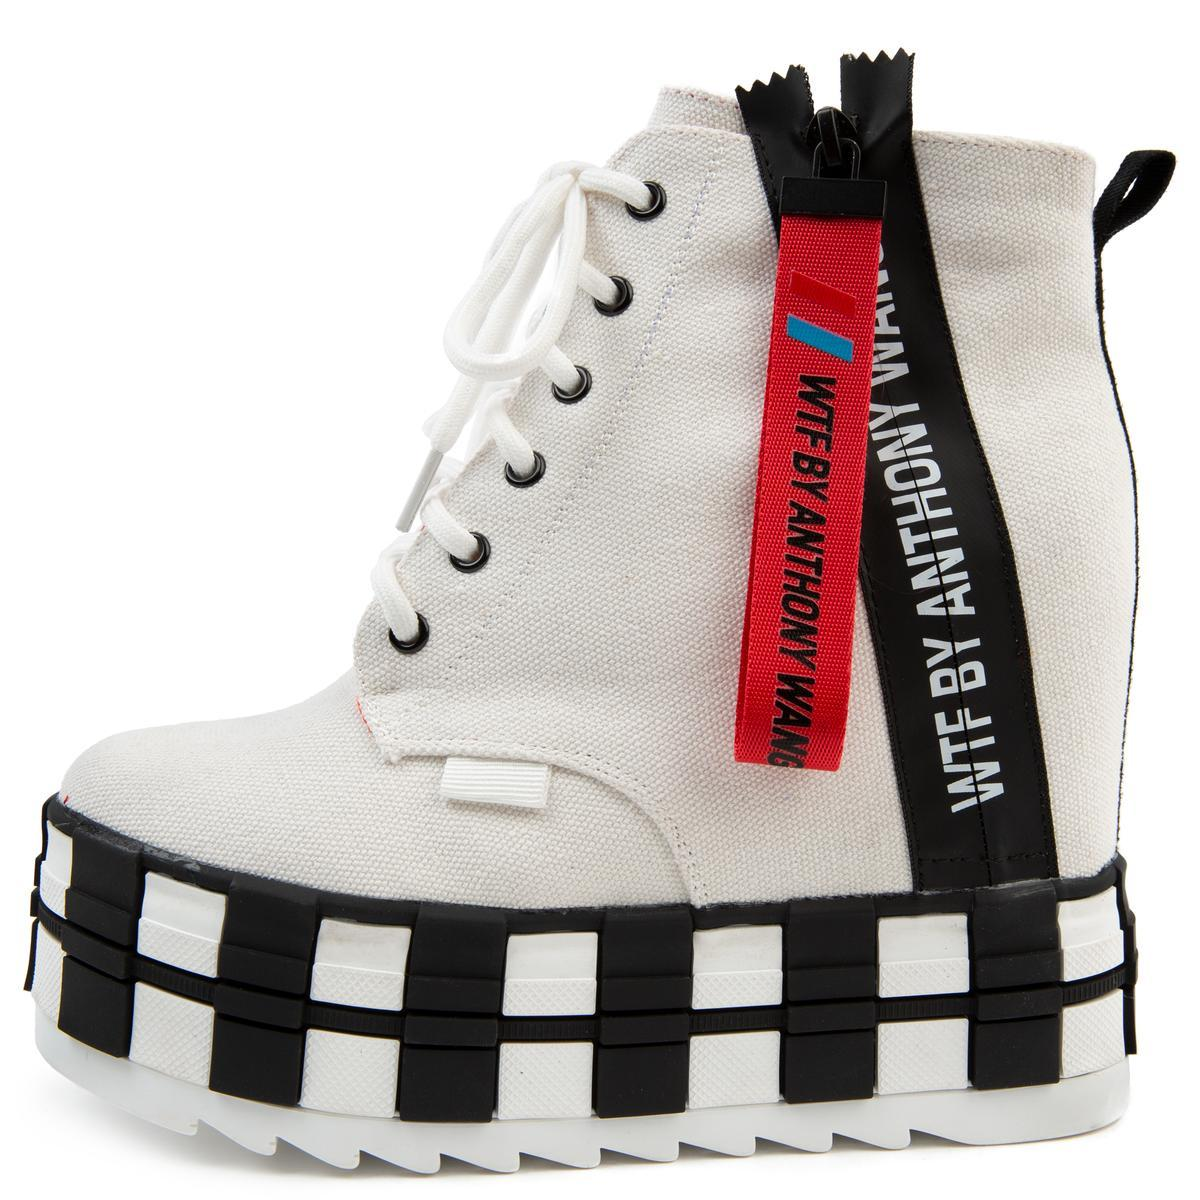 Minson Wedge Sneakers